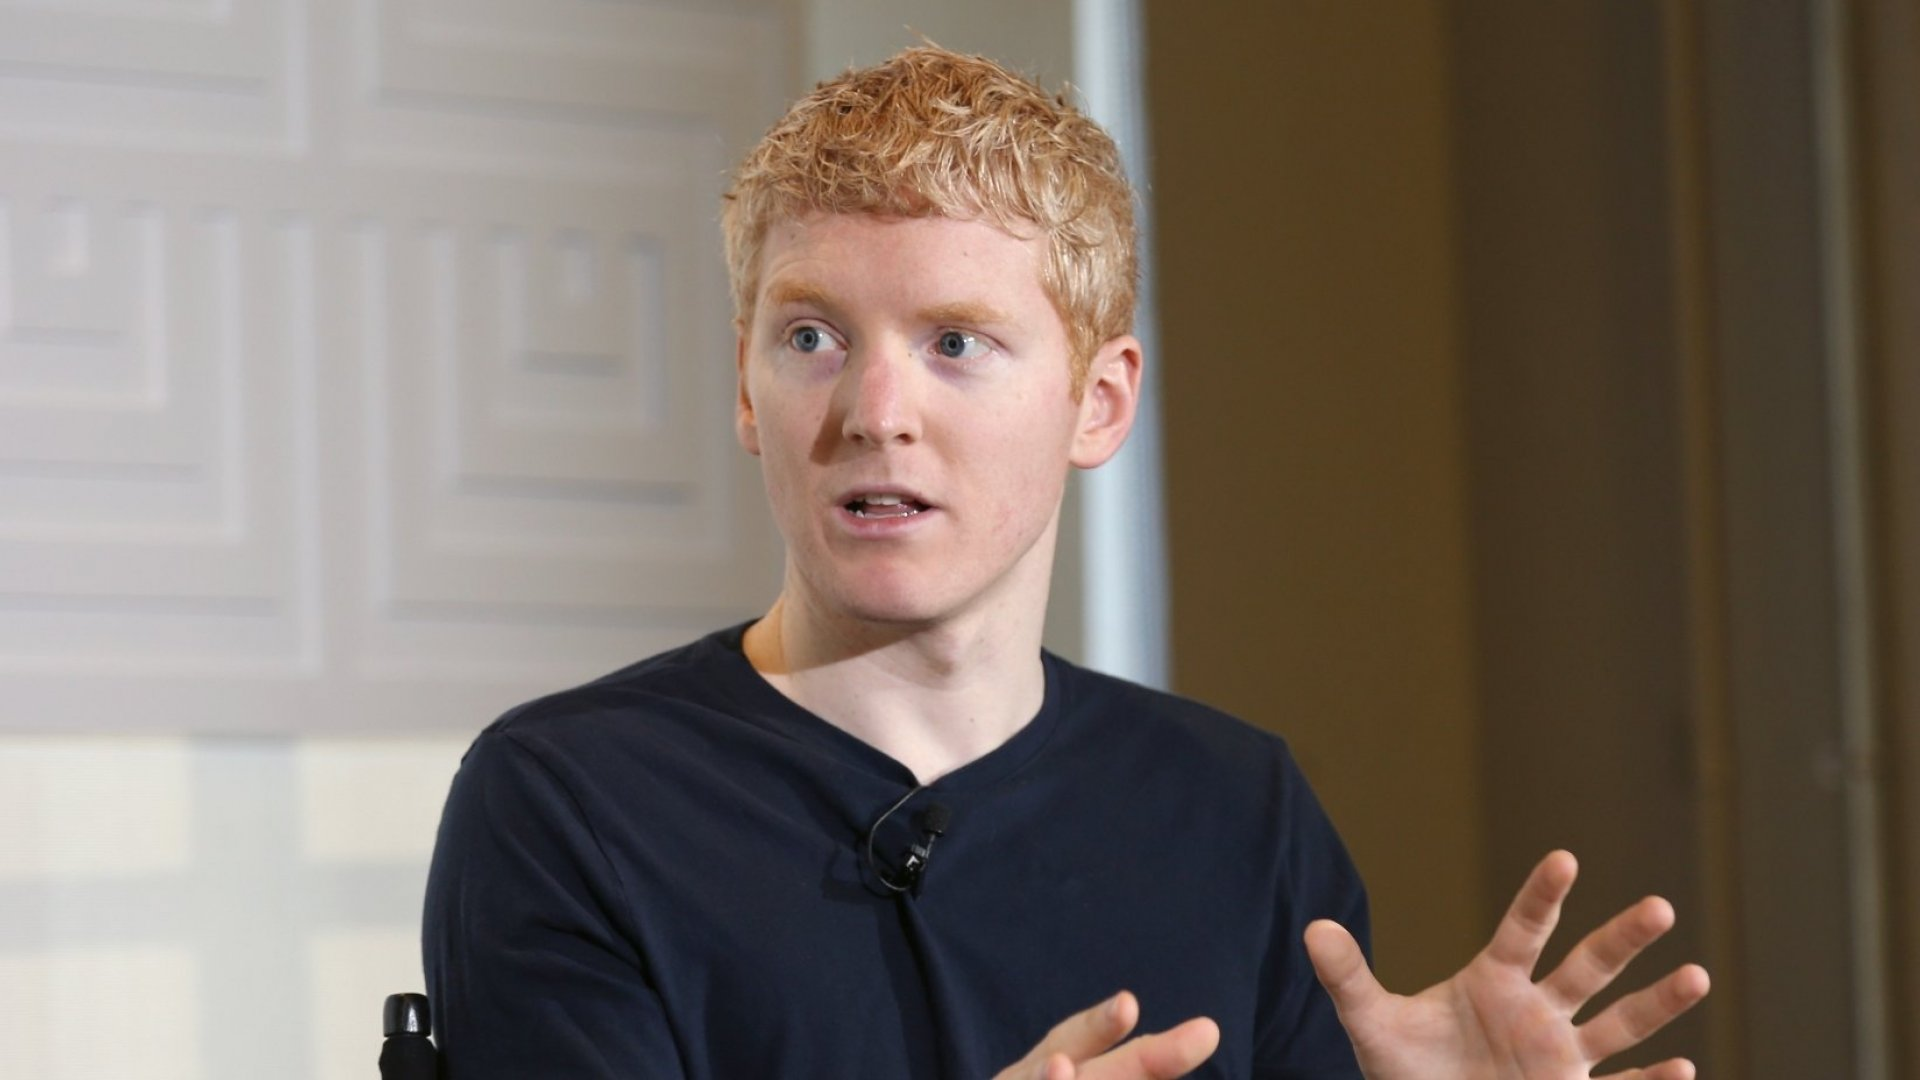 The 3 Questions Self-Made Billionaire Stripe Founder Patrick Collison Asks About Every Leadership Hire